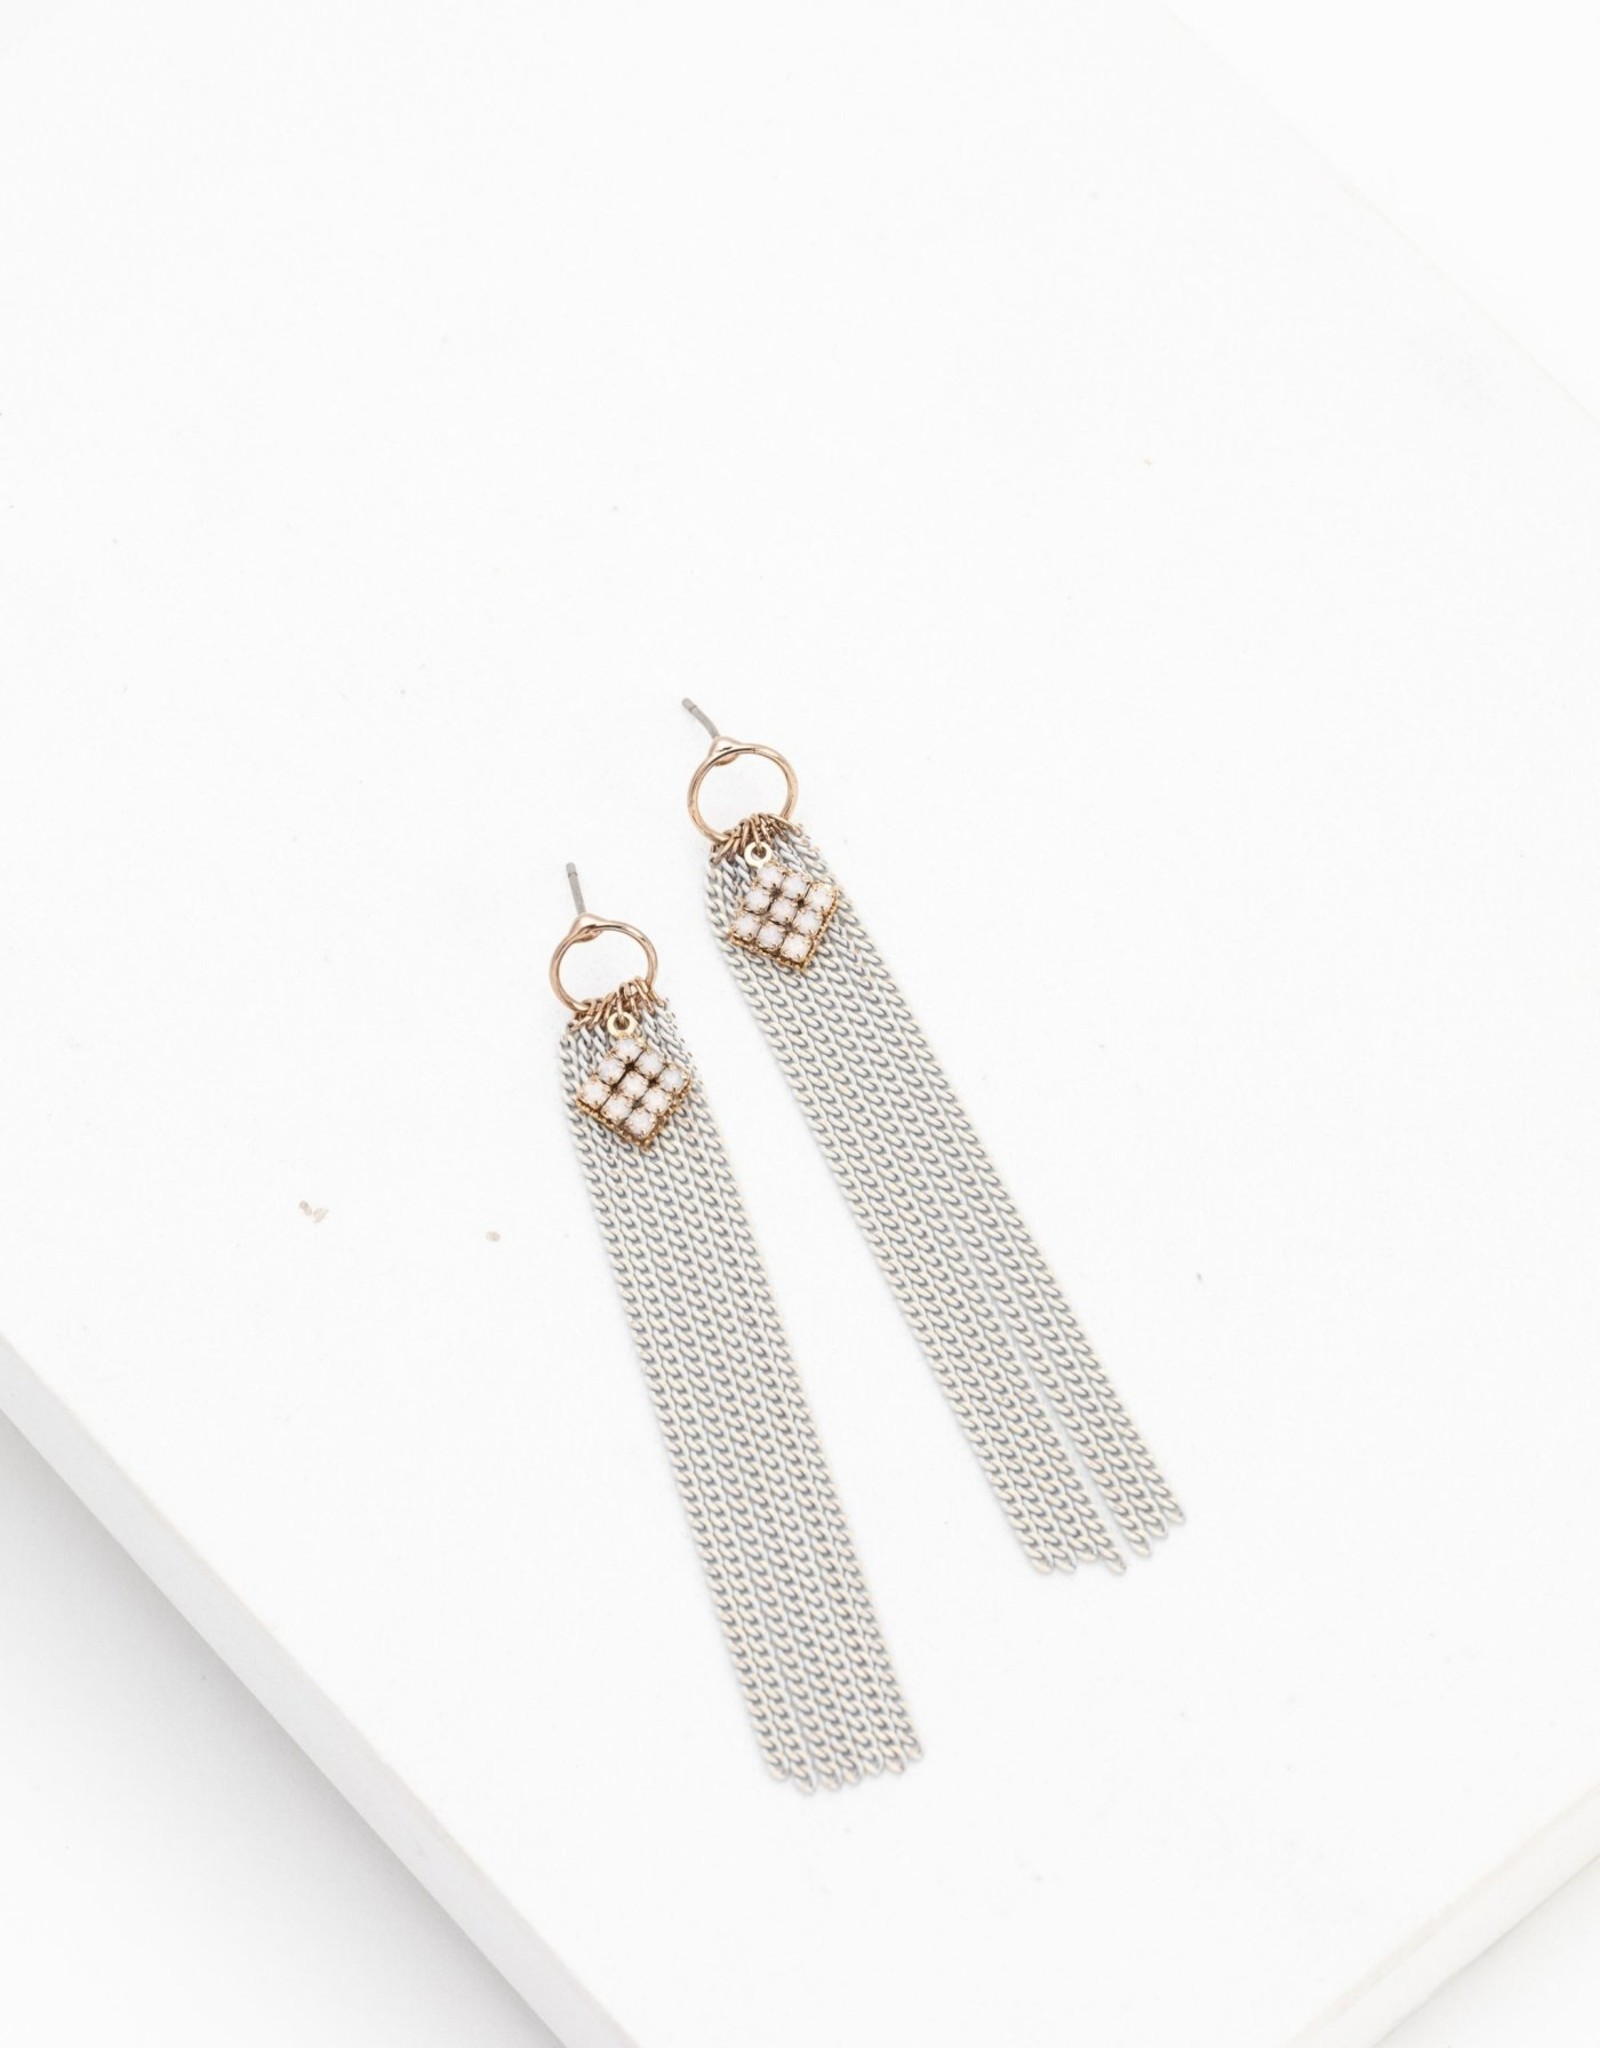 Lover's tempo Boucles d'oreilles - Siene chaines blanches